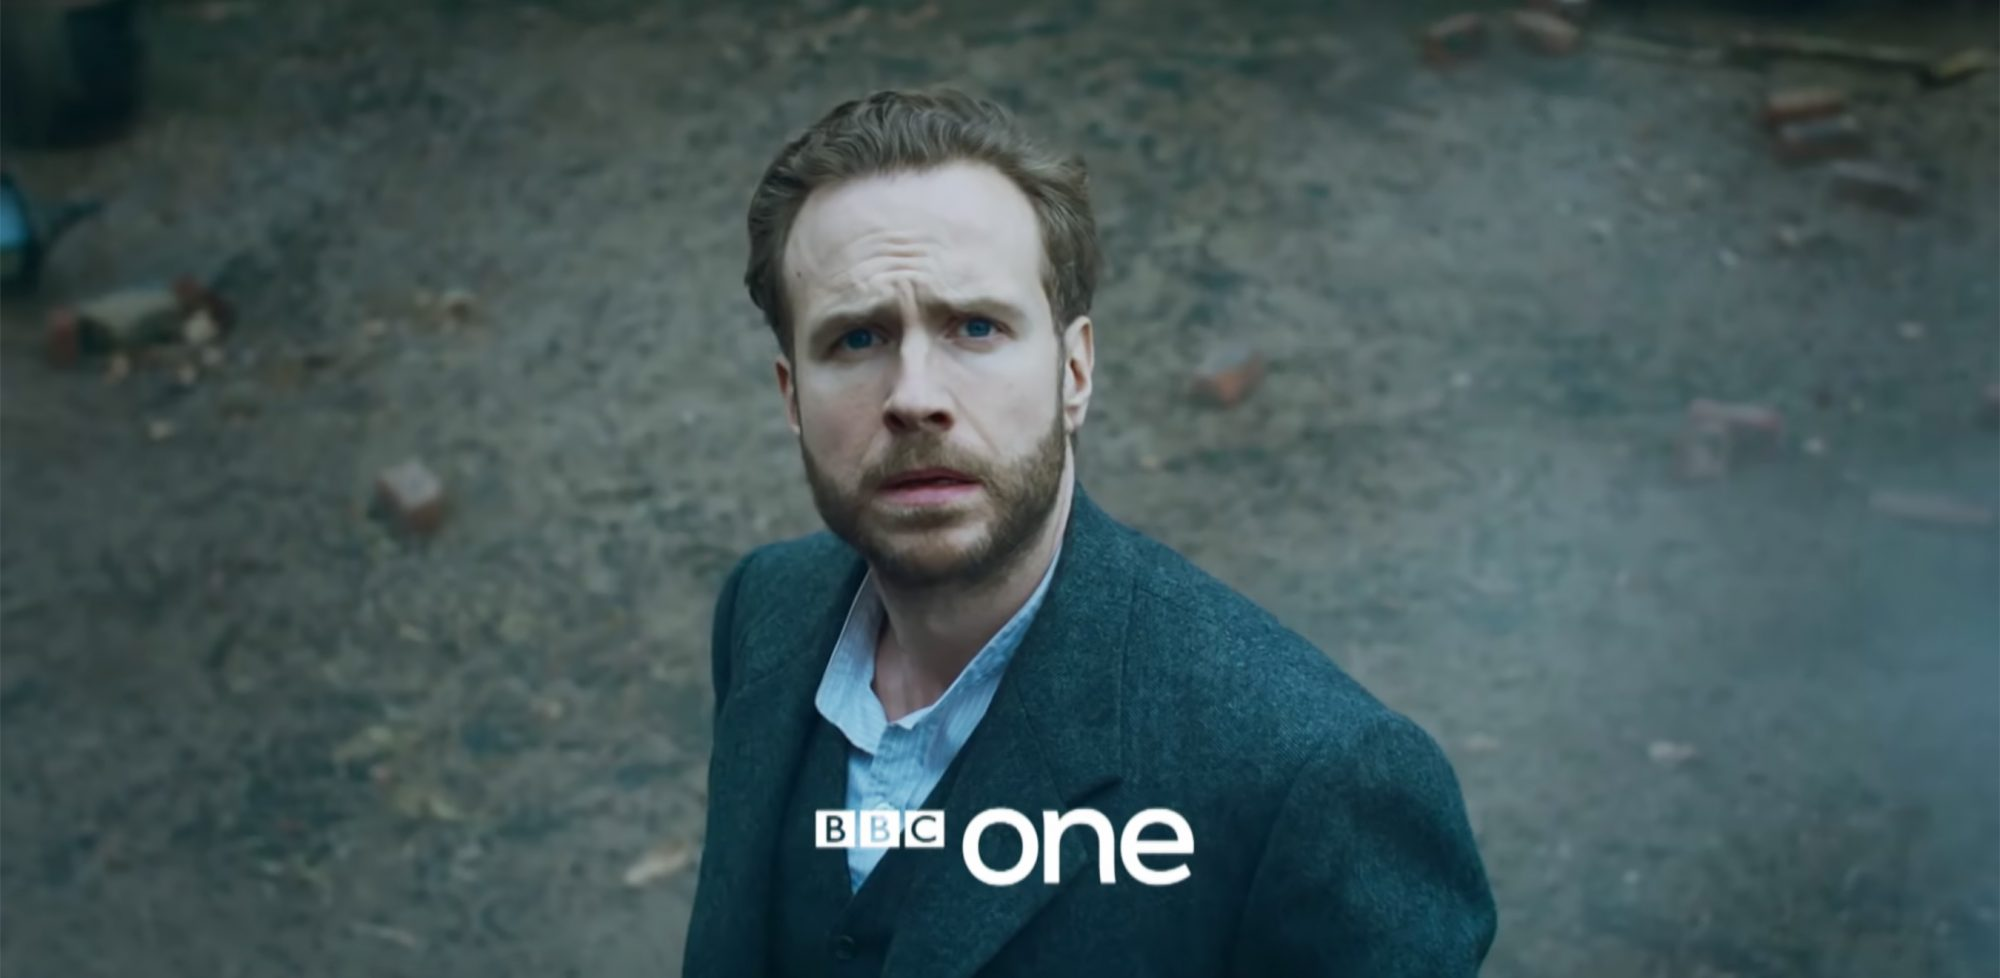 Rafe Spall - The War of the Worlds